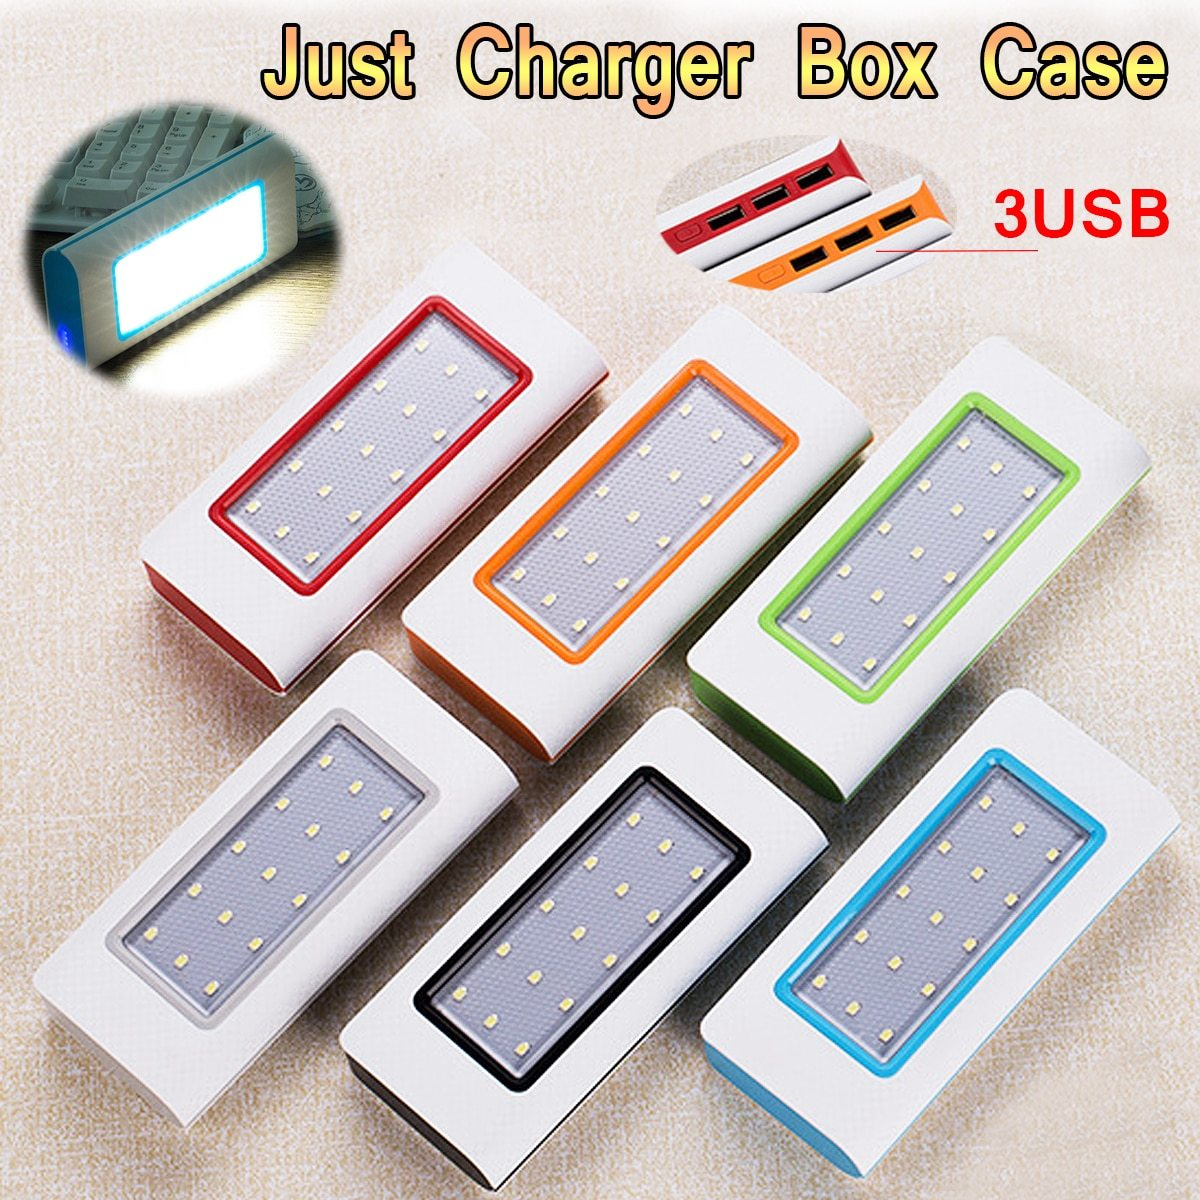 Solar LED Portable 3 USB Power Bank 5x18650 External Battery Charger Box Case